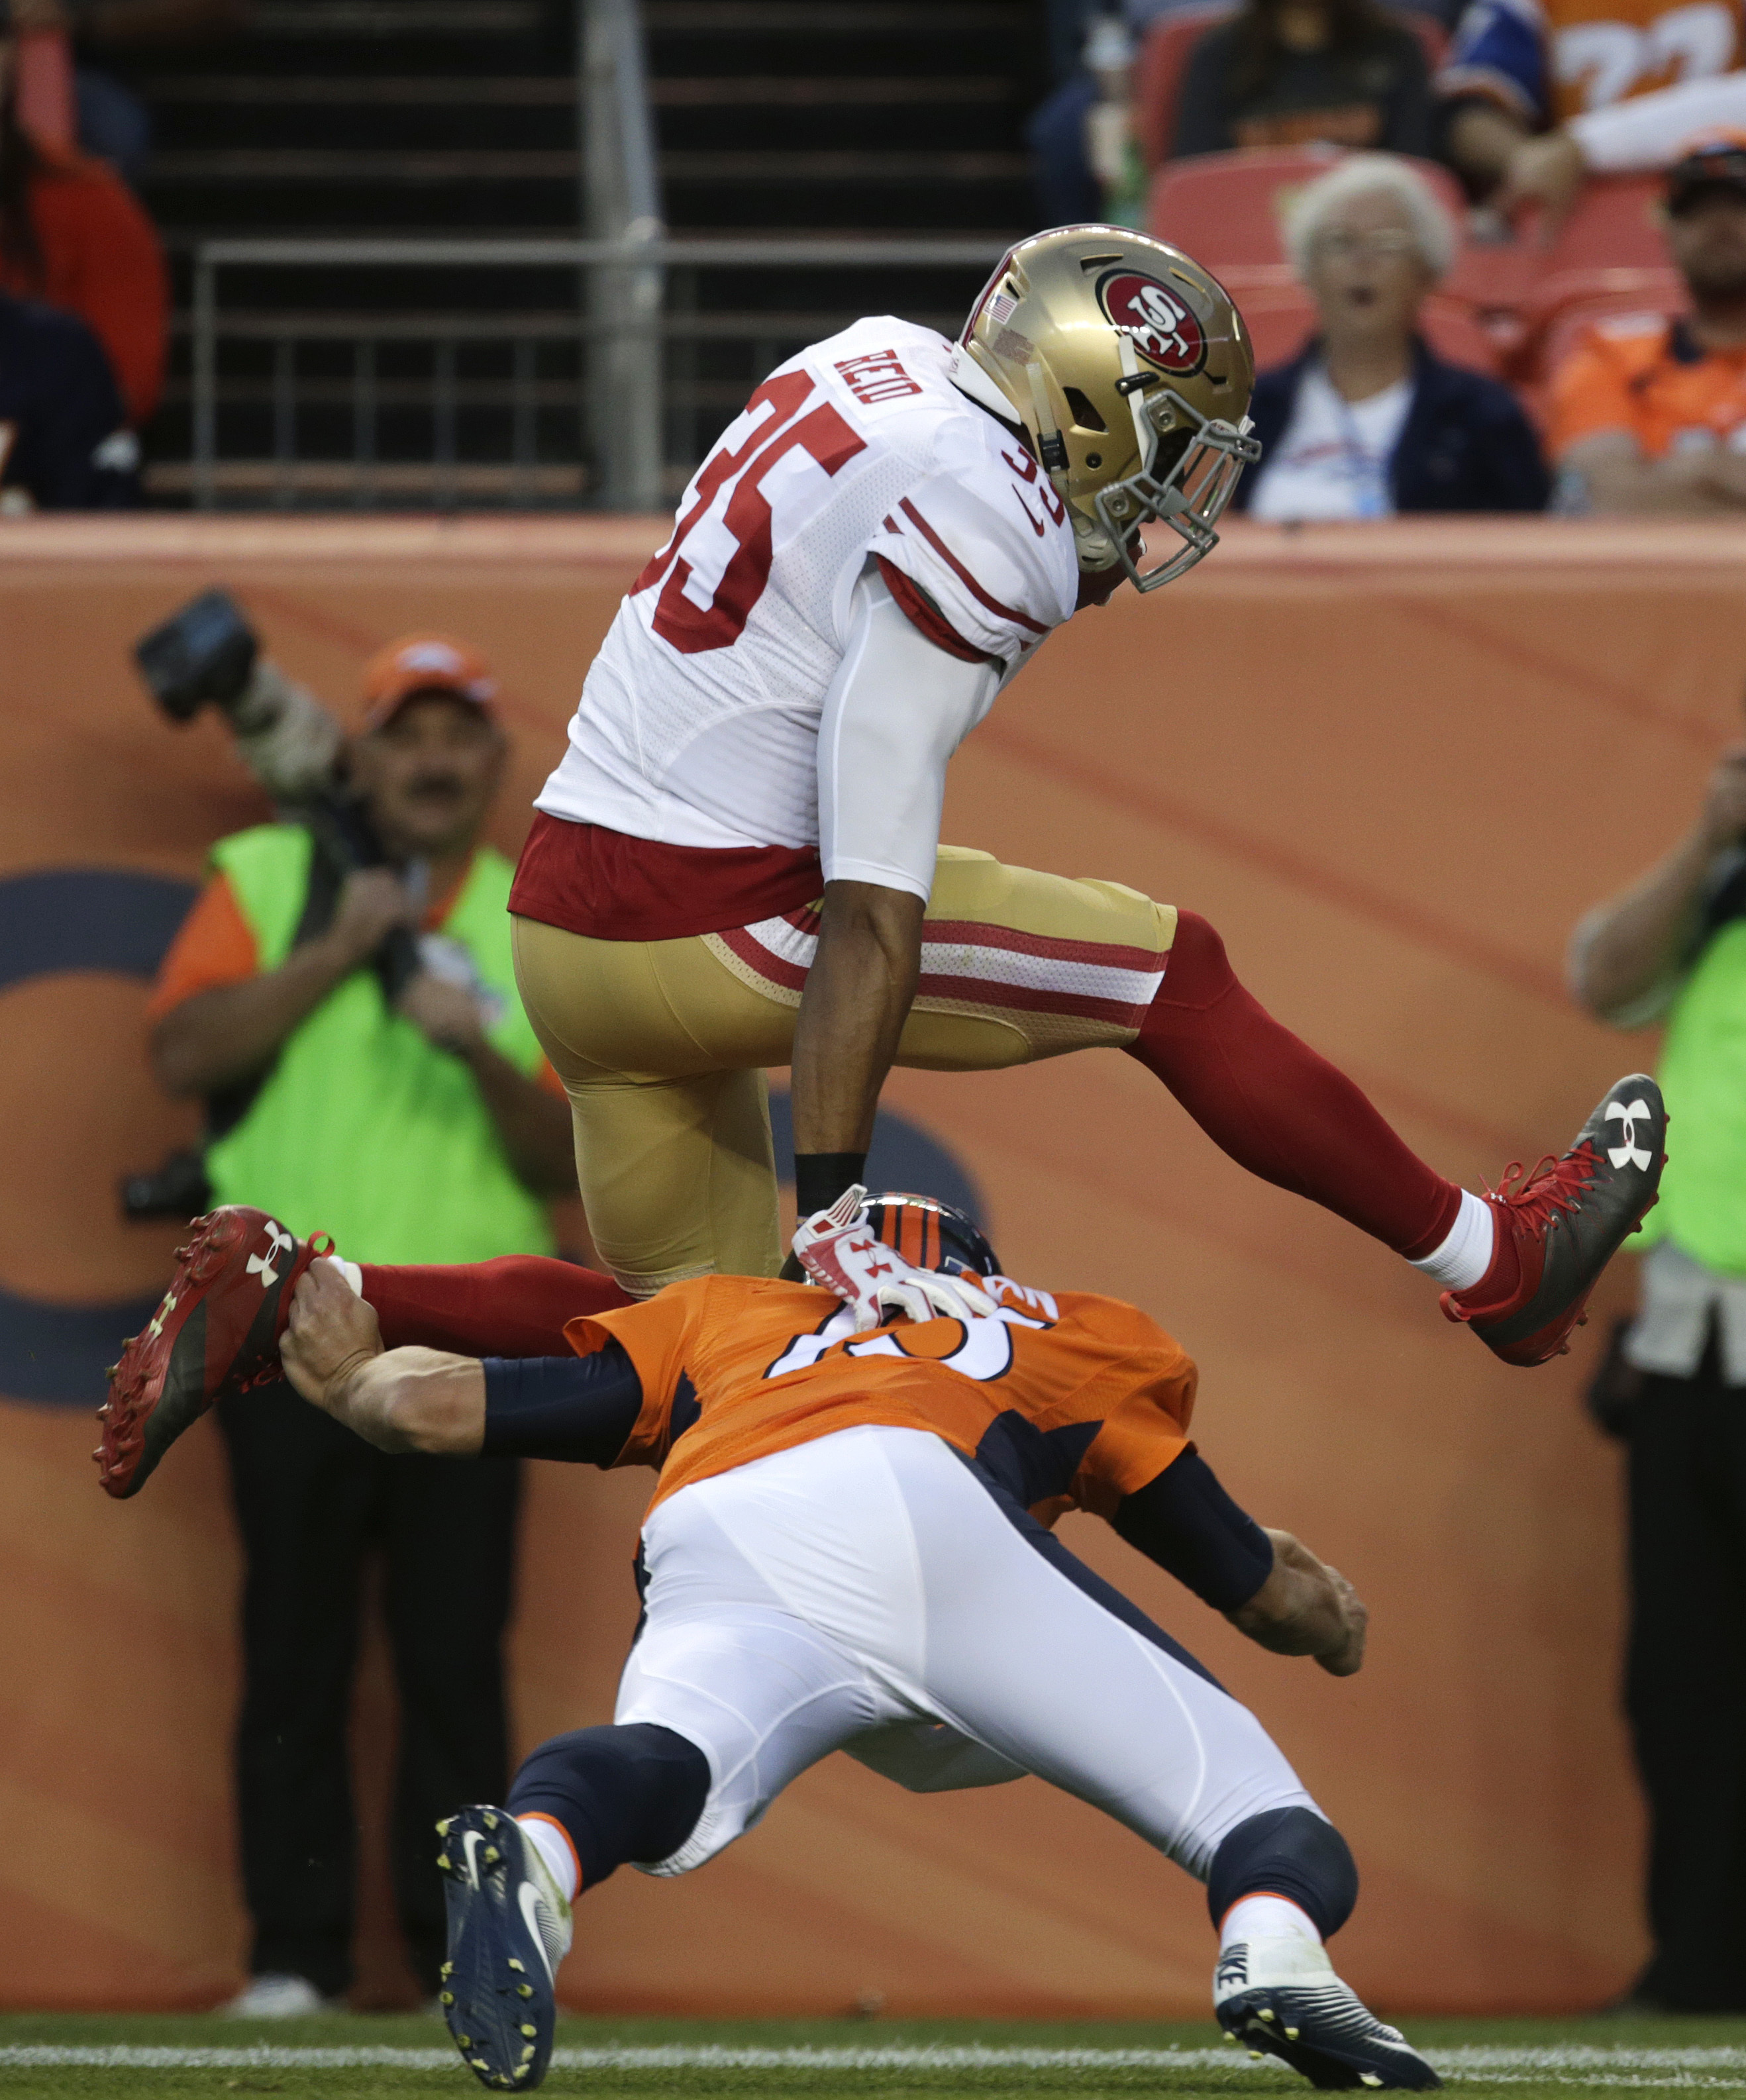 San Francisco 49ers free safety Eric Reid leaps over Denver Broncos quarterback Trevor Siemian as Reid runs for a touchdown after intercepting a pass from Siemian during the first half of a preseason NFL football game, Saturday, Aug. 20, 2016, in Denver.